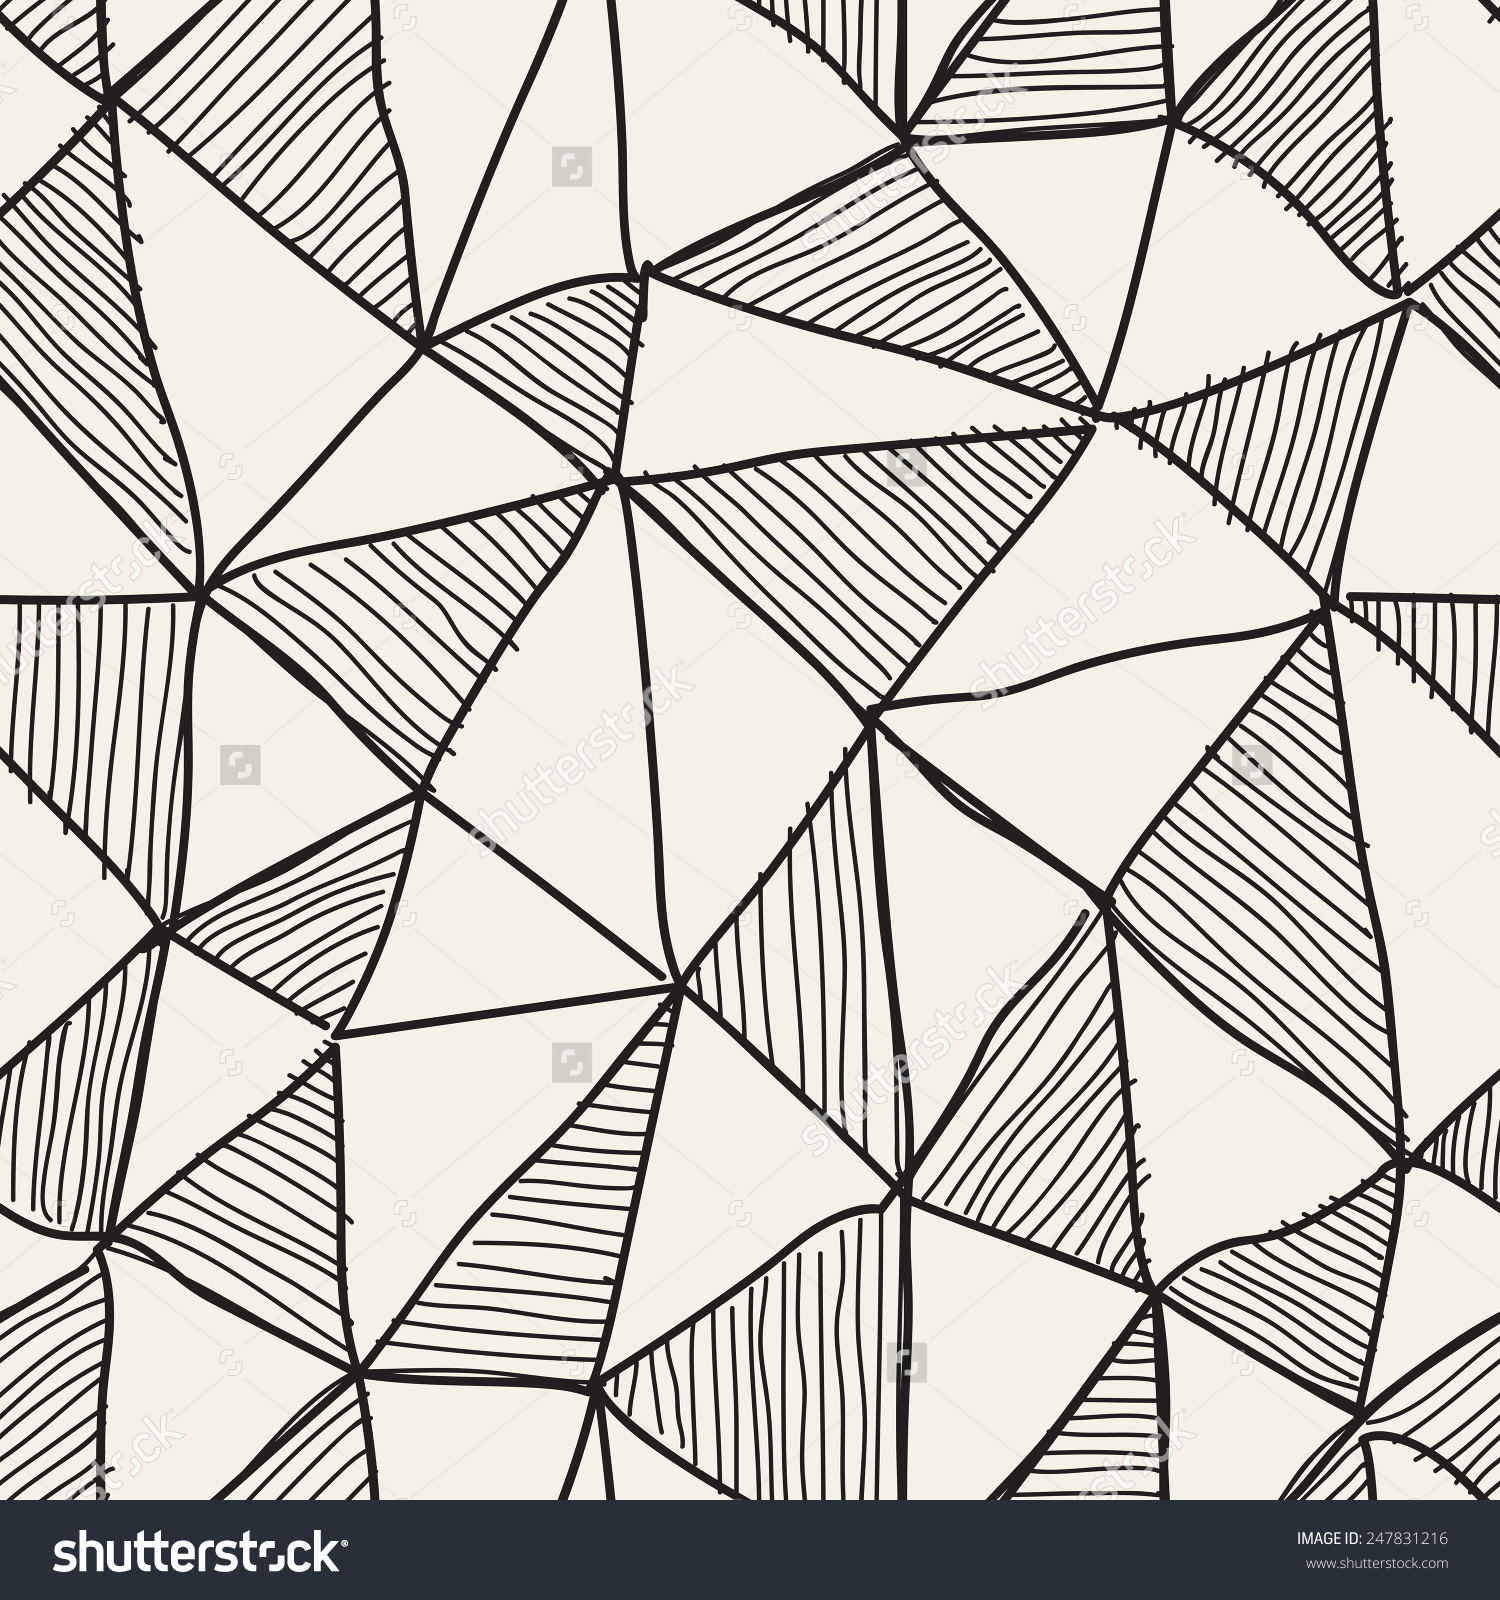 82030fddcb1ad 1500x1600 Vector Seamless Black White Irregular Triangle Stock And Lines